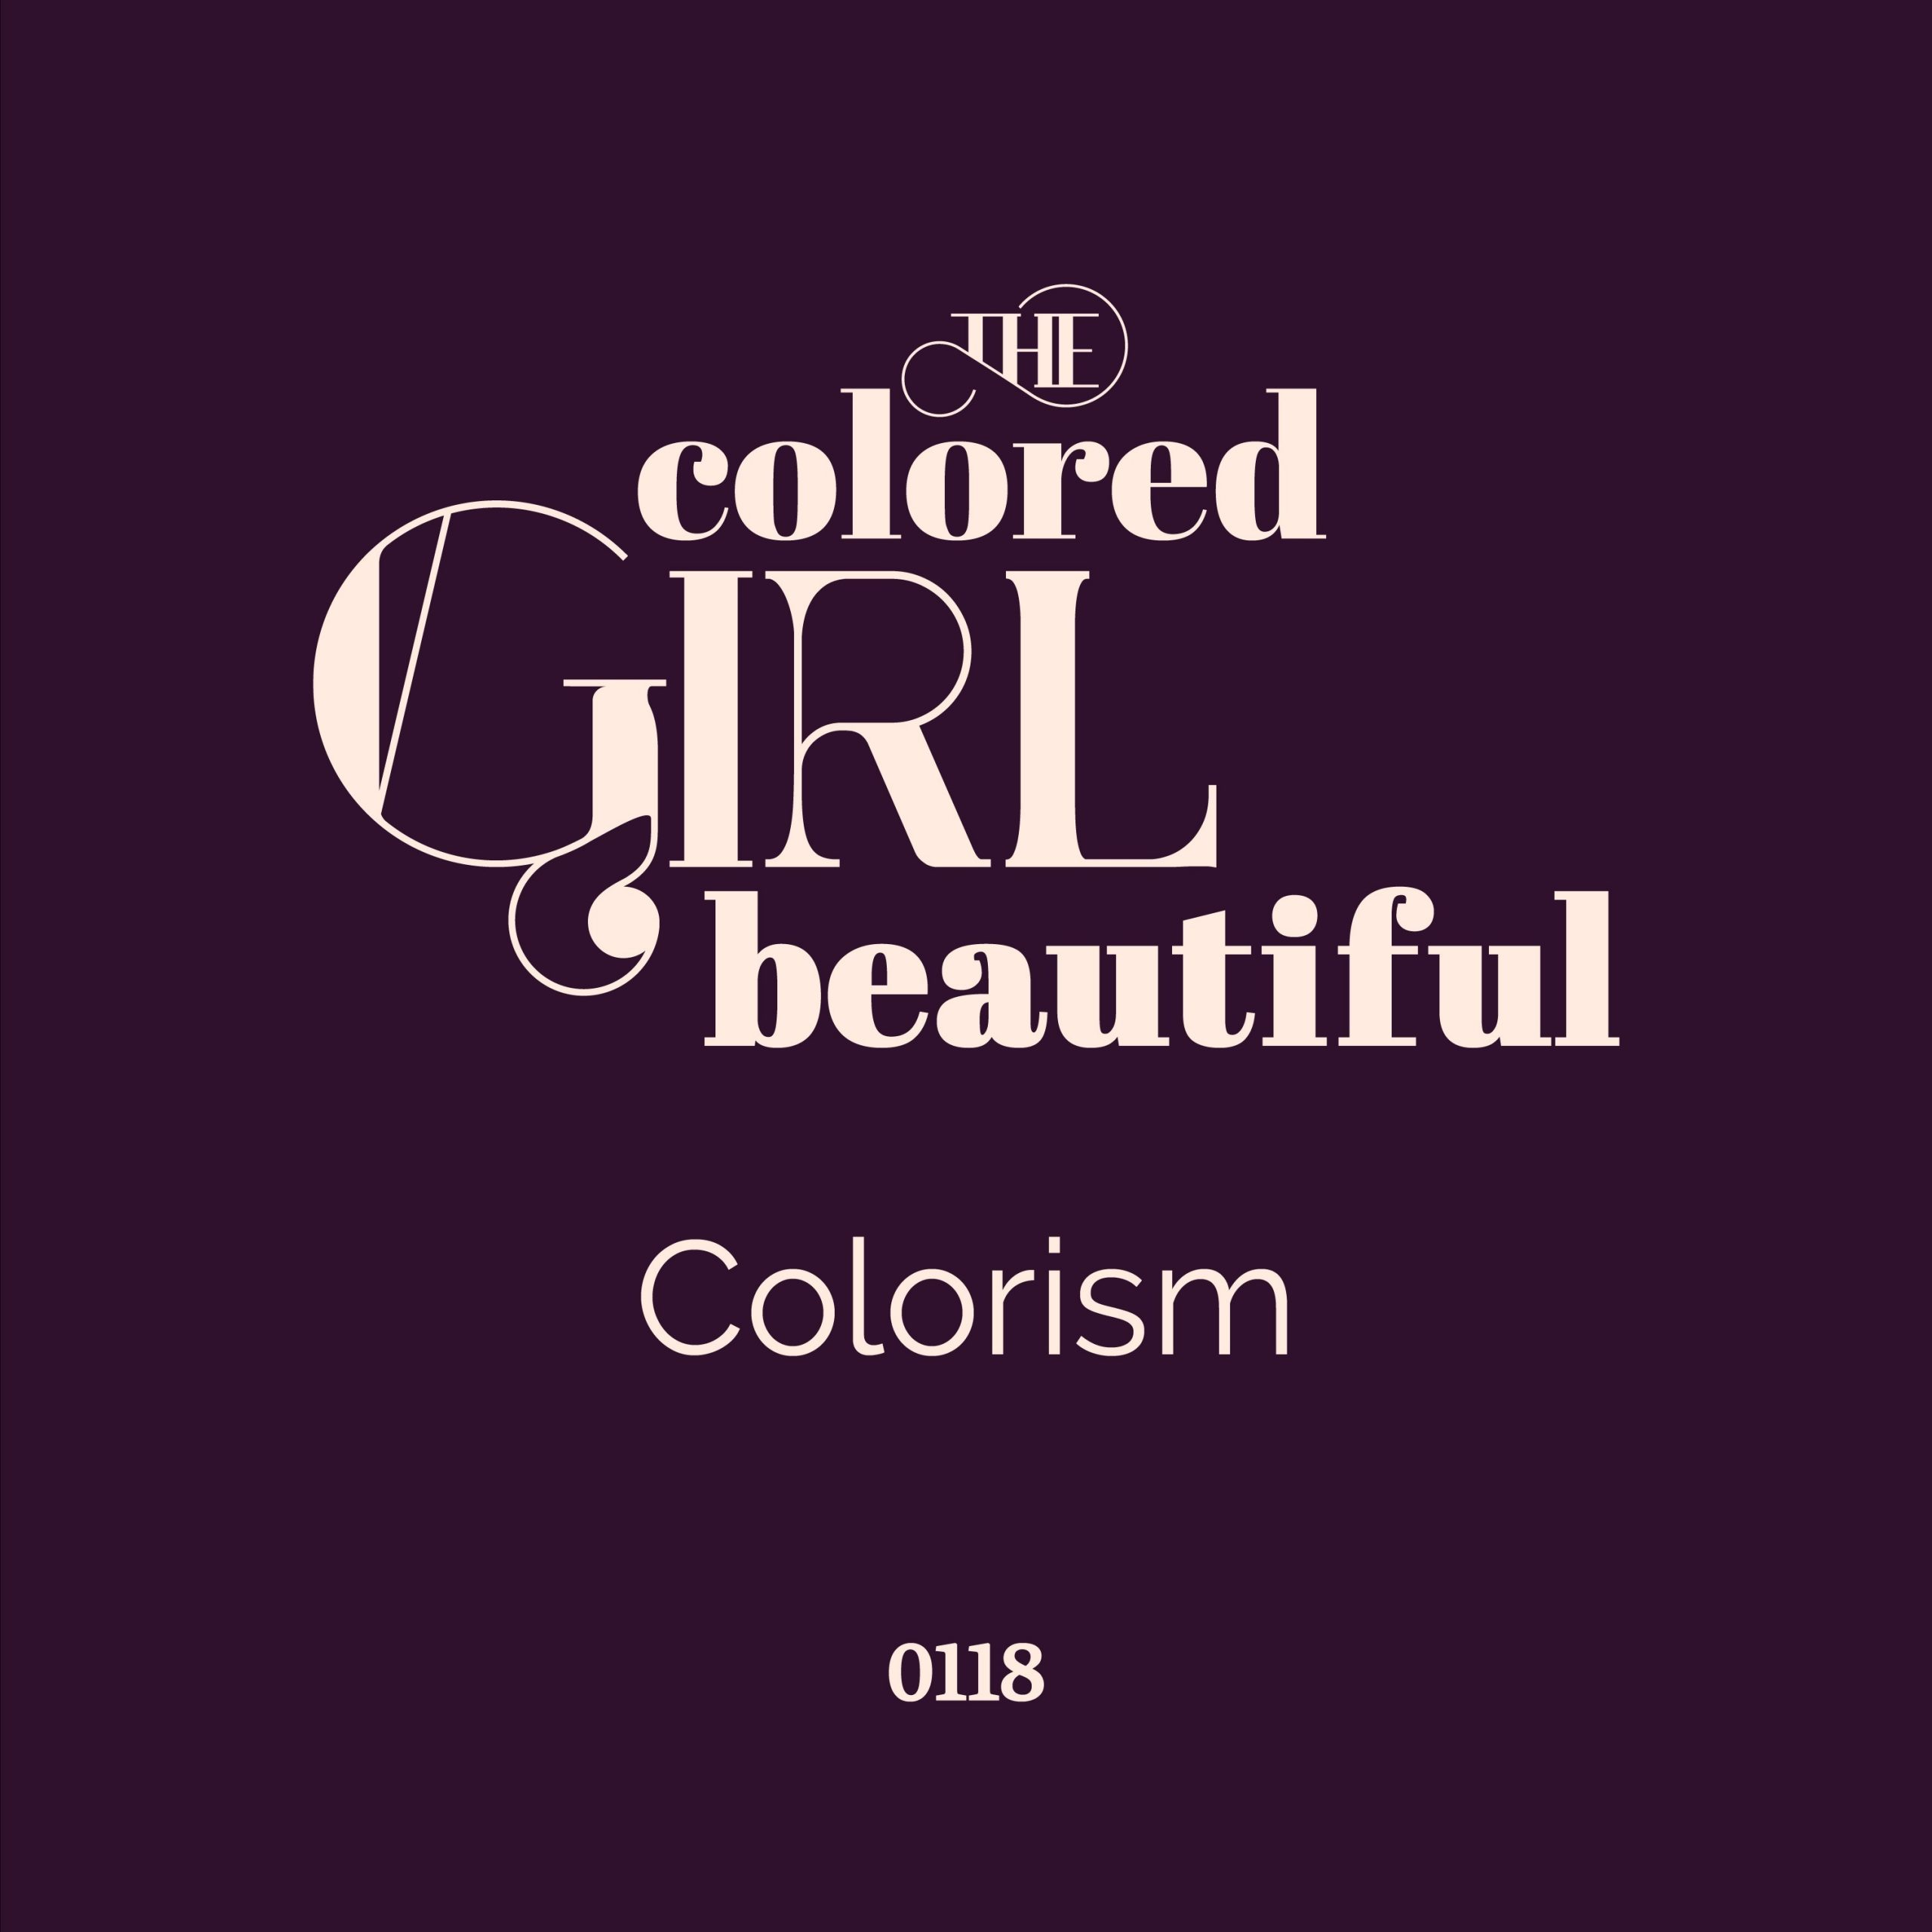 Minisode 118: History – Colorism – The Colored Girl Beautiful